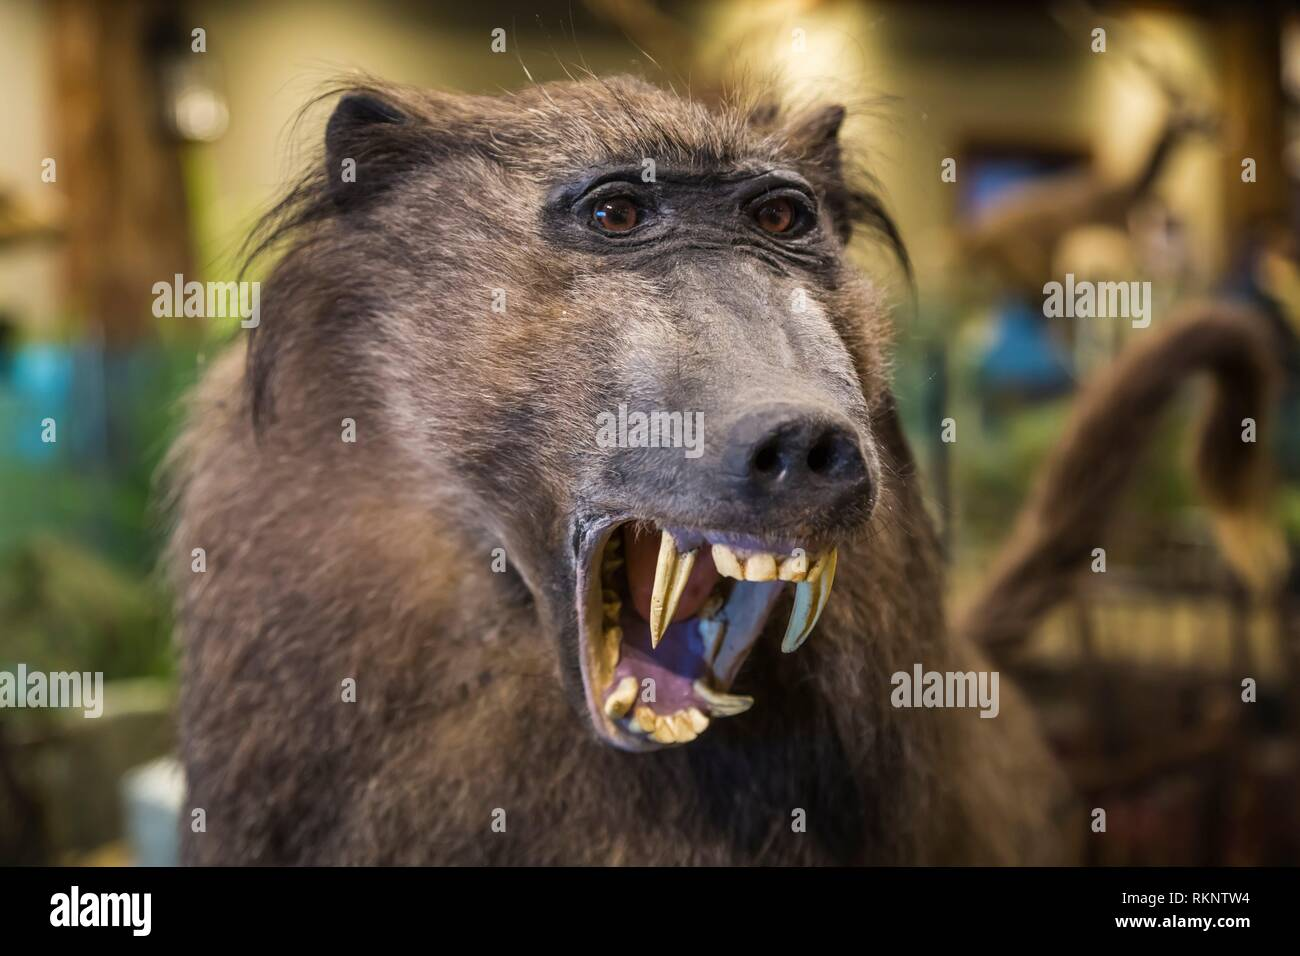 The taxidermy exhibit at the restaurant at The Ark Encounter, Williamstown, Kentucky, USA. - Stock Image